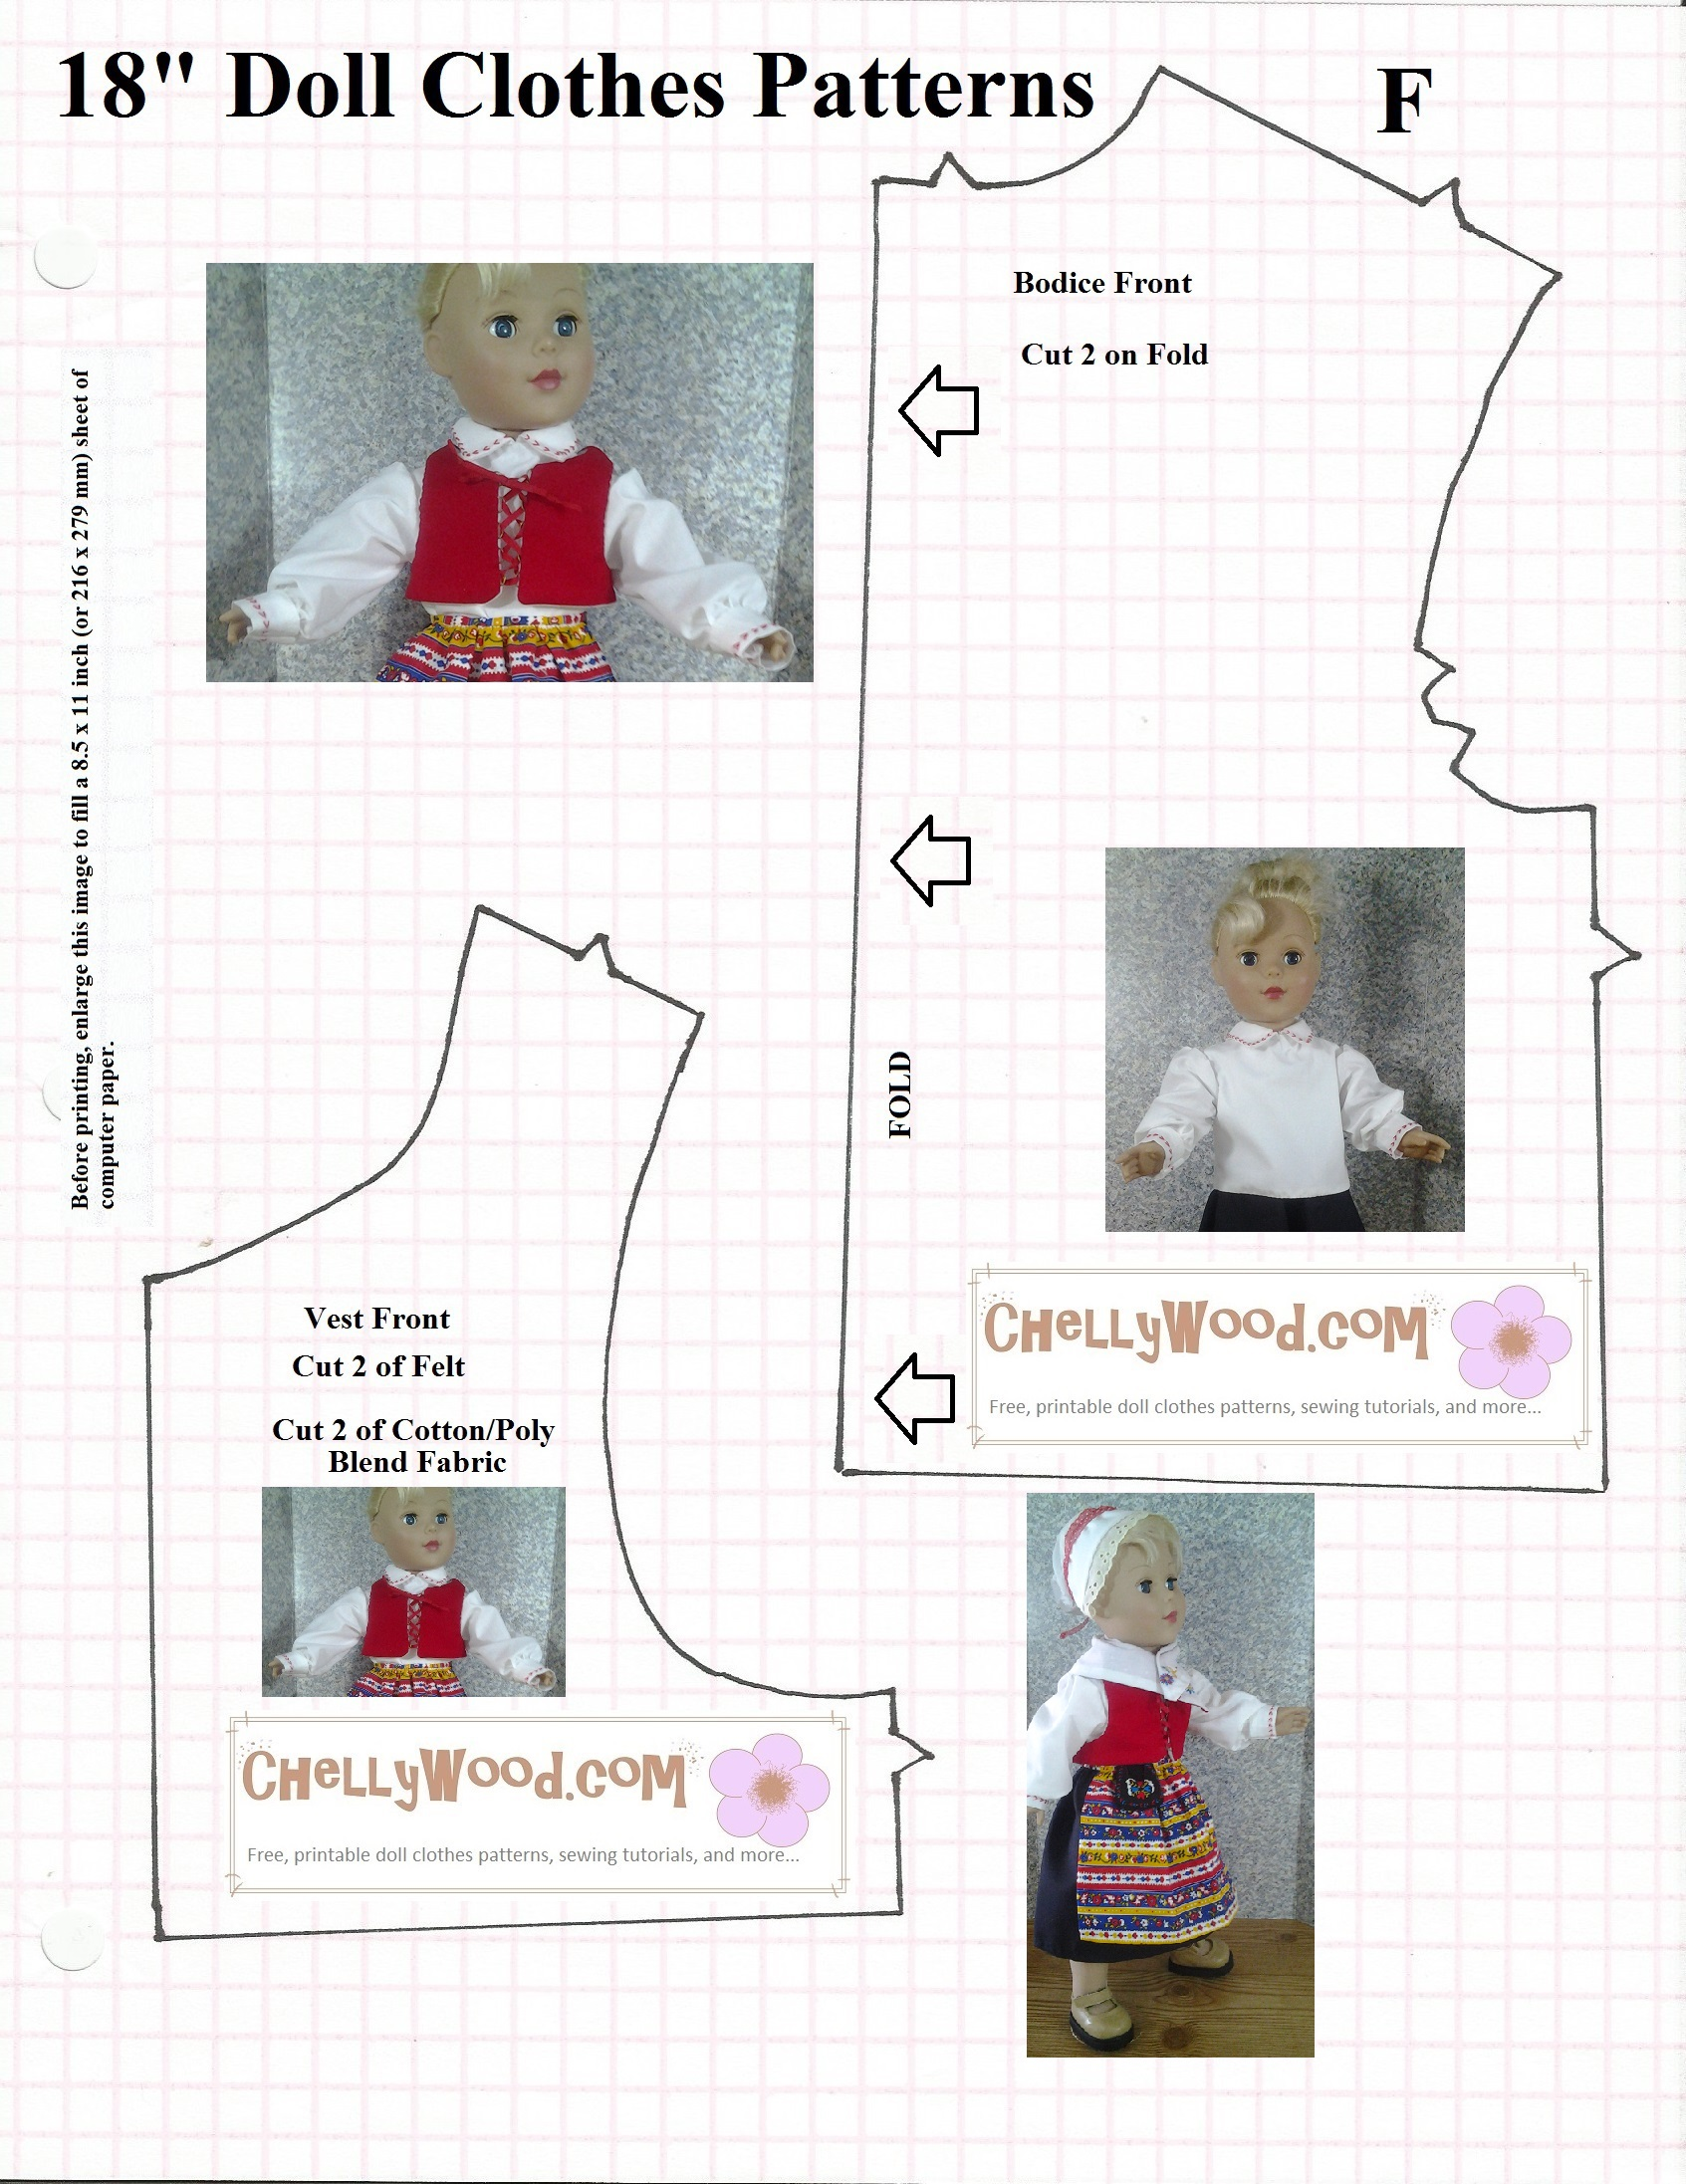 This is a graphic of Persnickety 18 Doll Clothes Patterns Free Printable